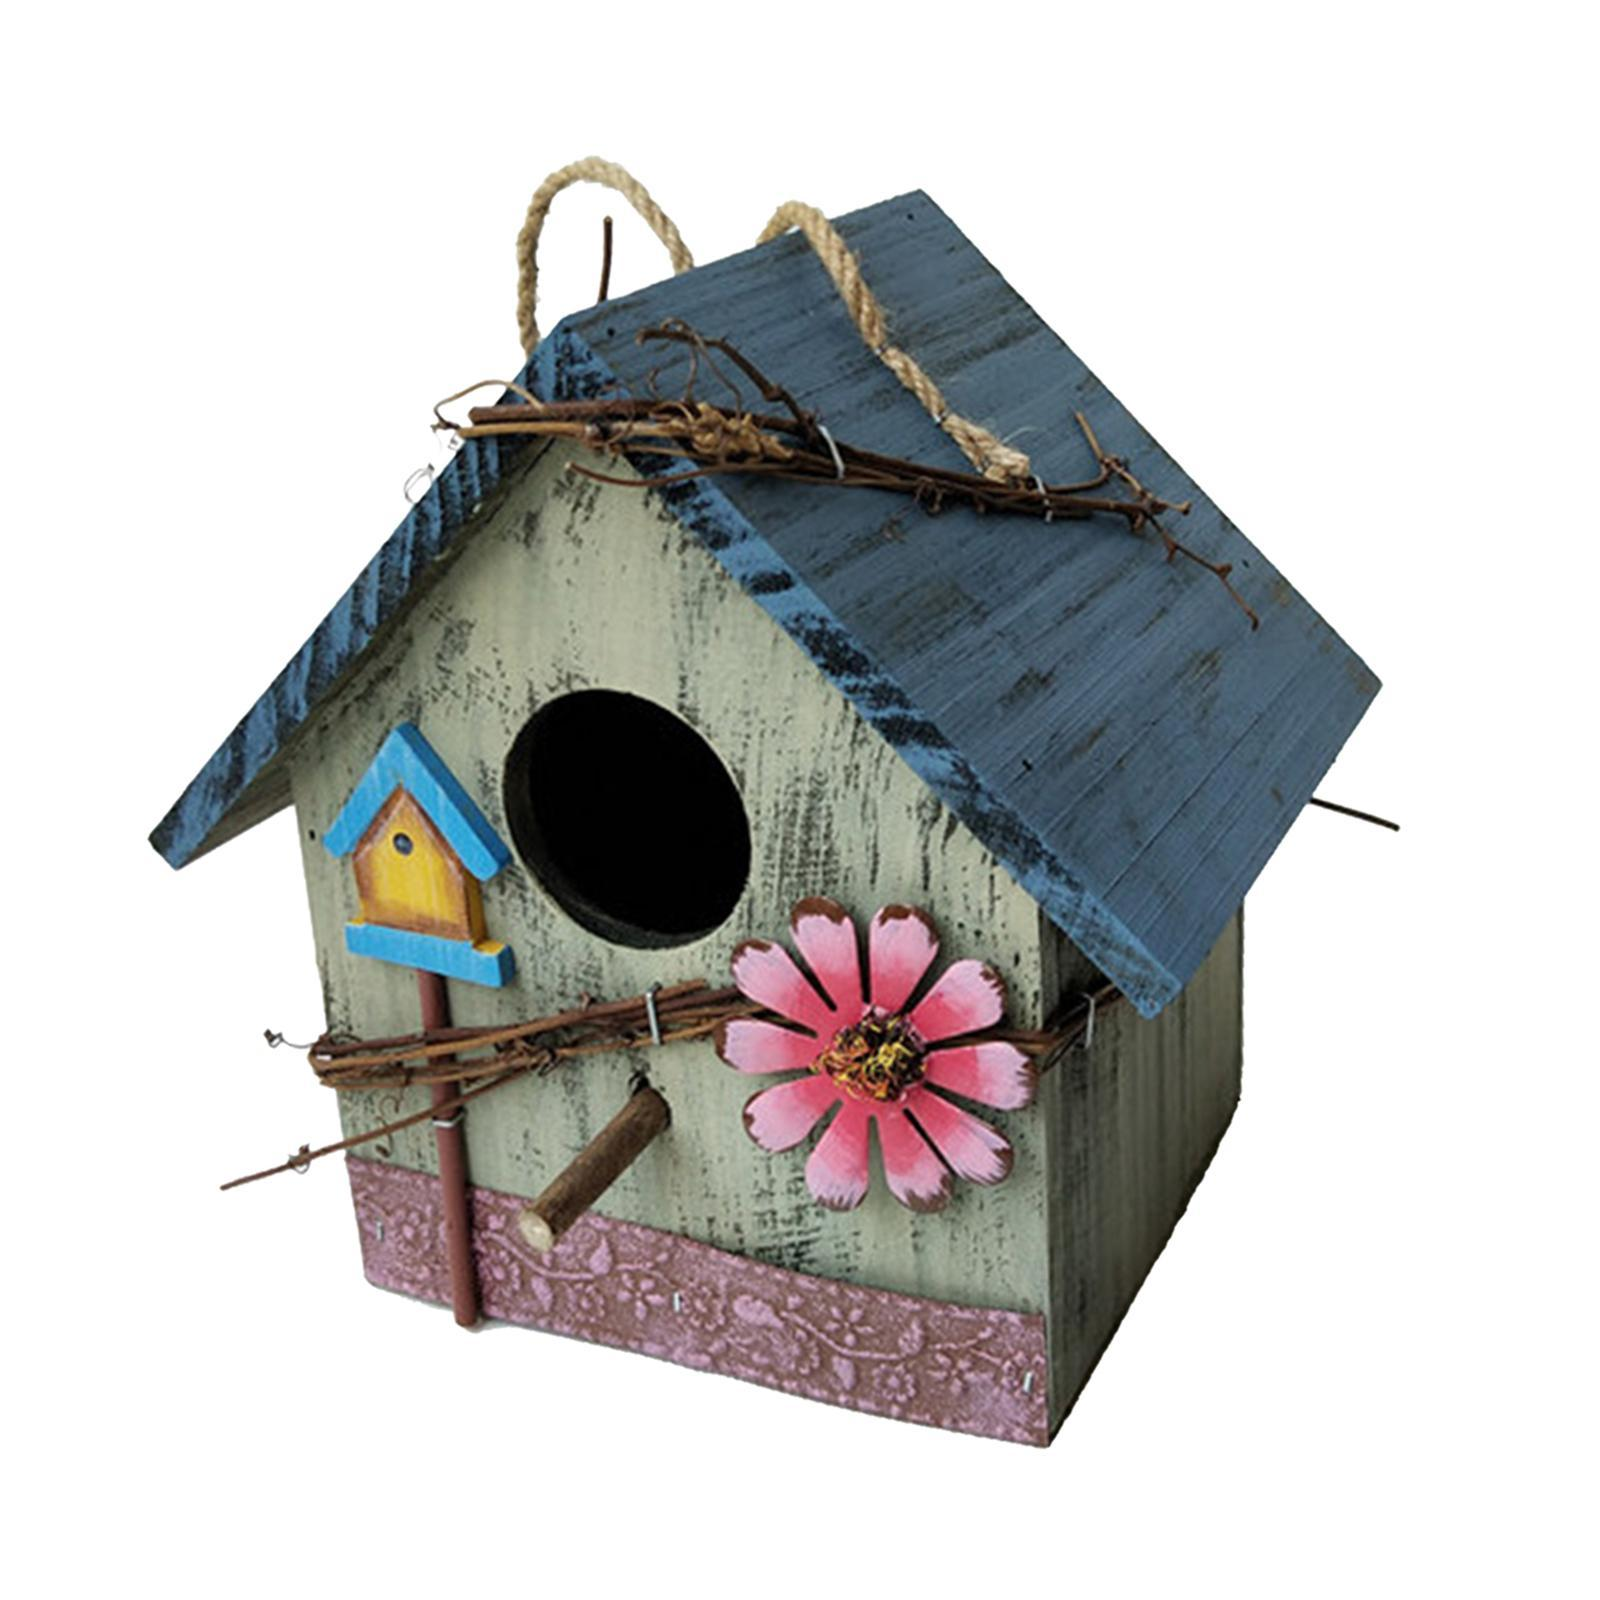 thumbnail 31 - Antique Hand Painted Wood Birdhouse Decorative Outdoor Bird House Garden